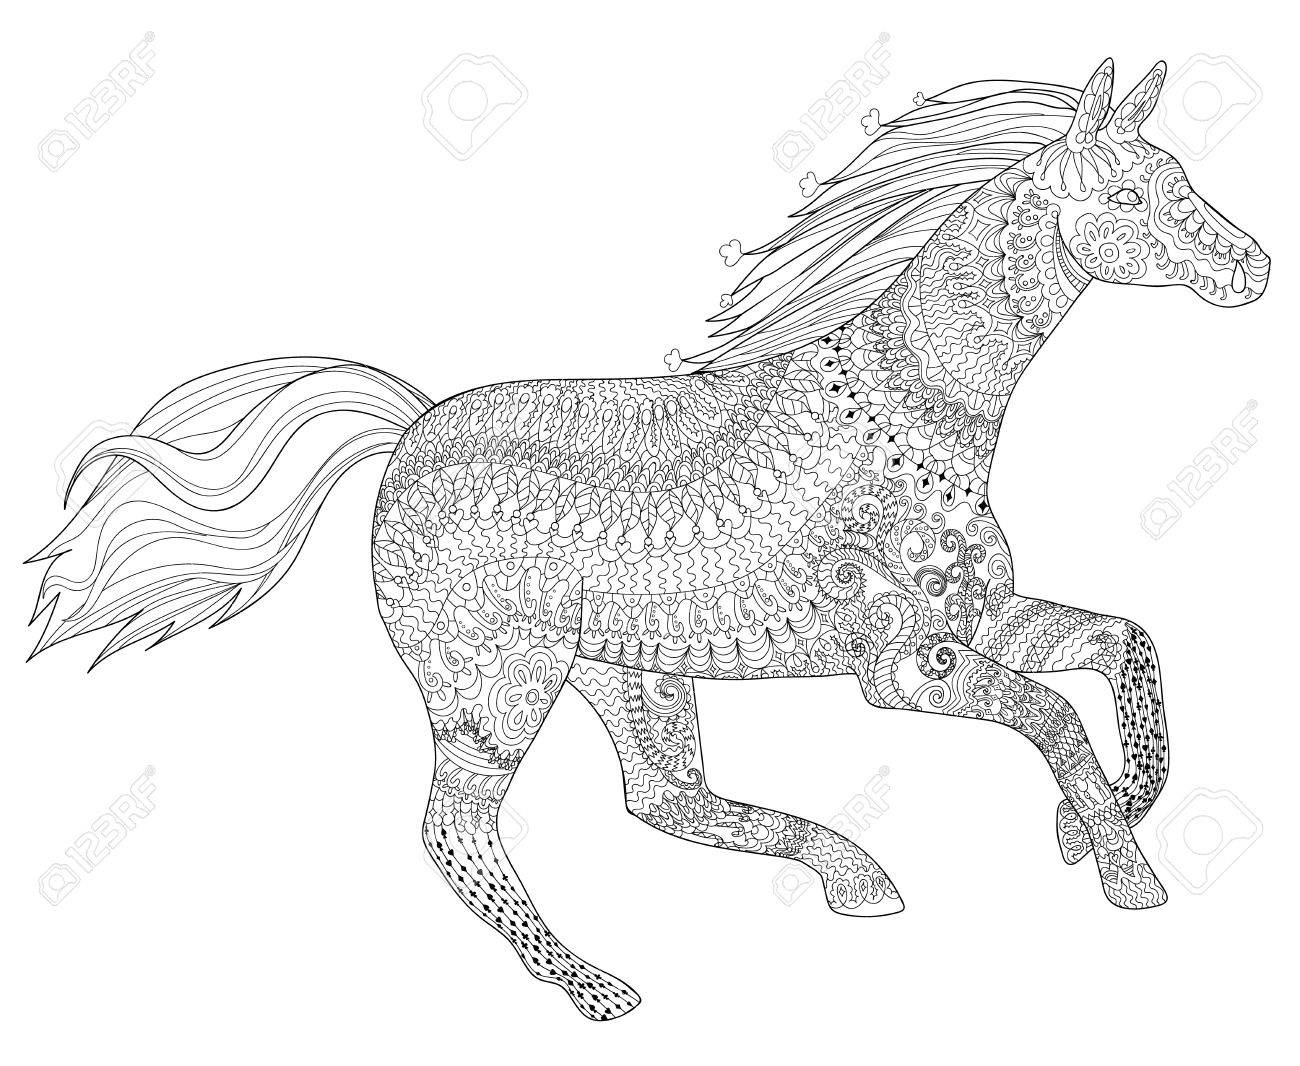 Adult Coloring Page For Antistress Art Therapy Running Horse